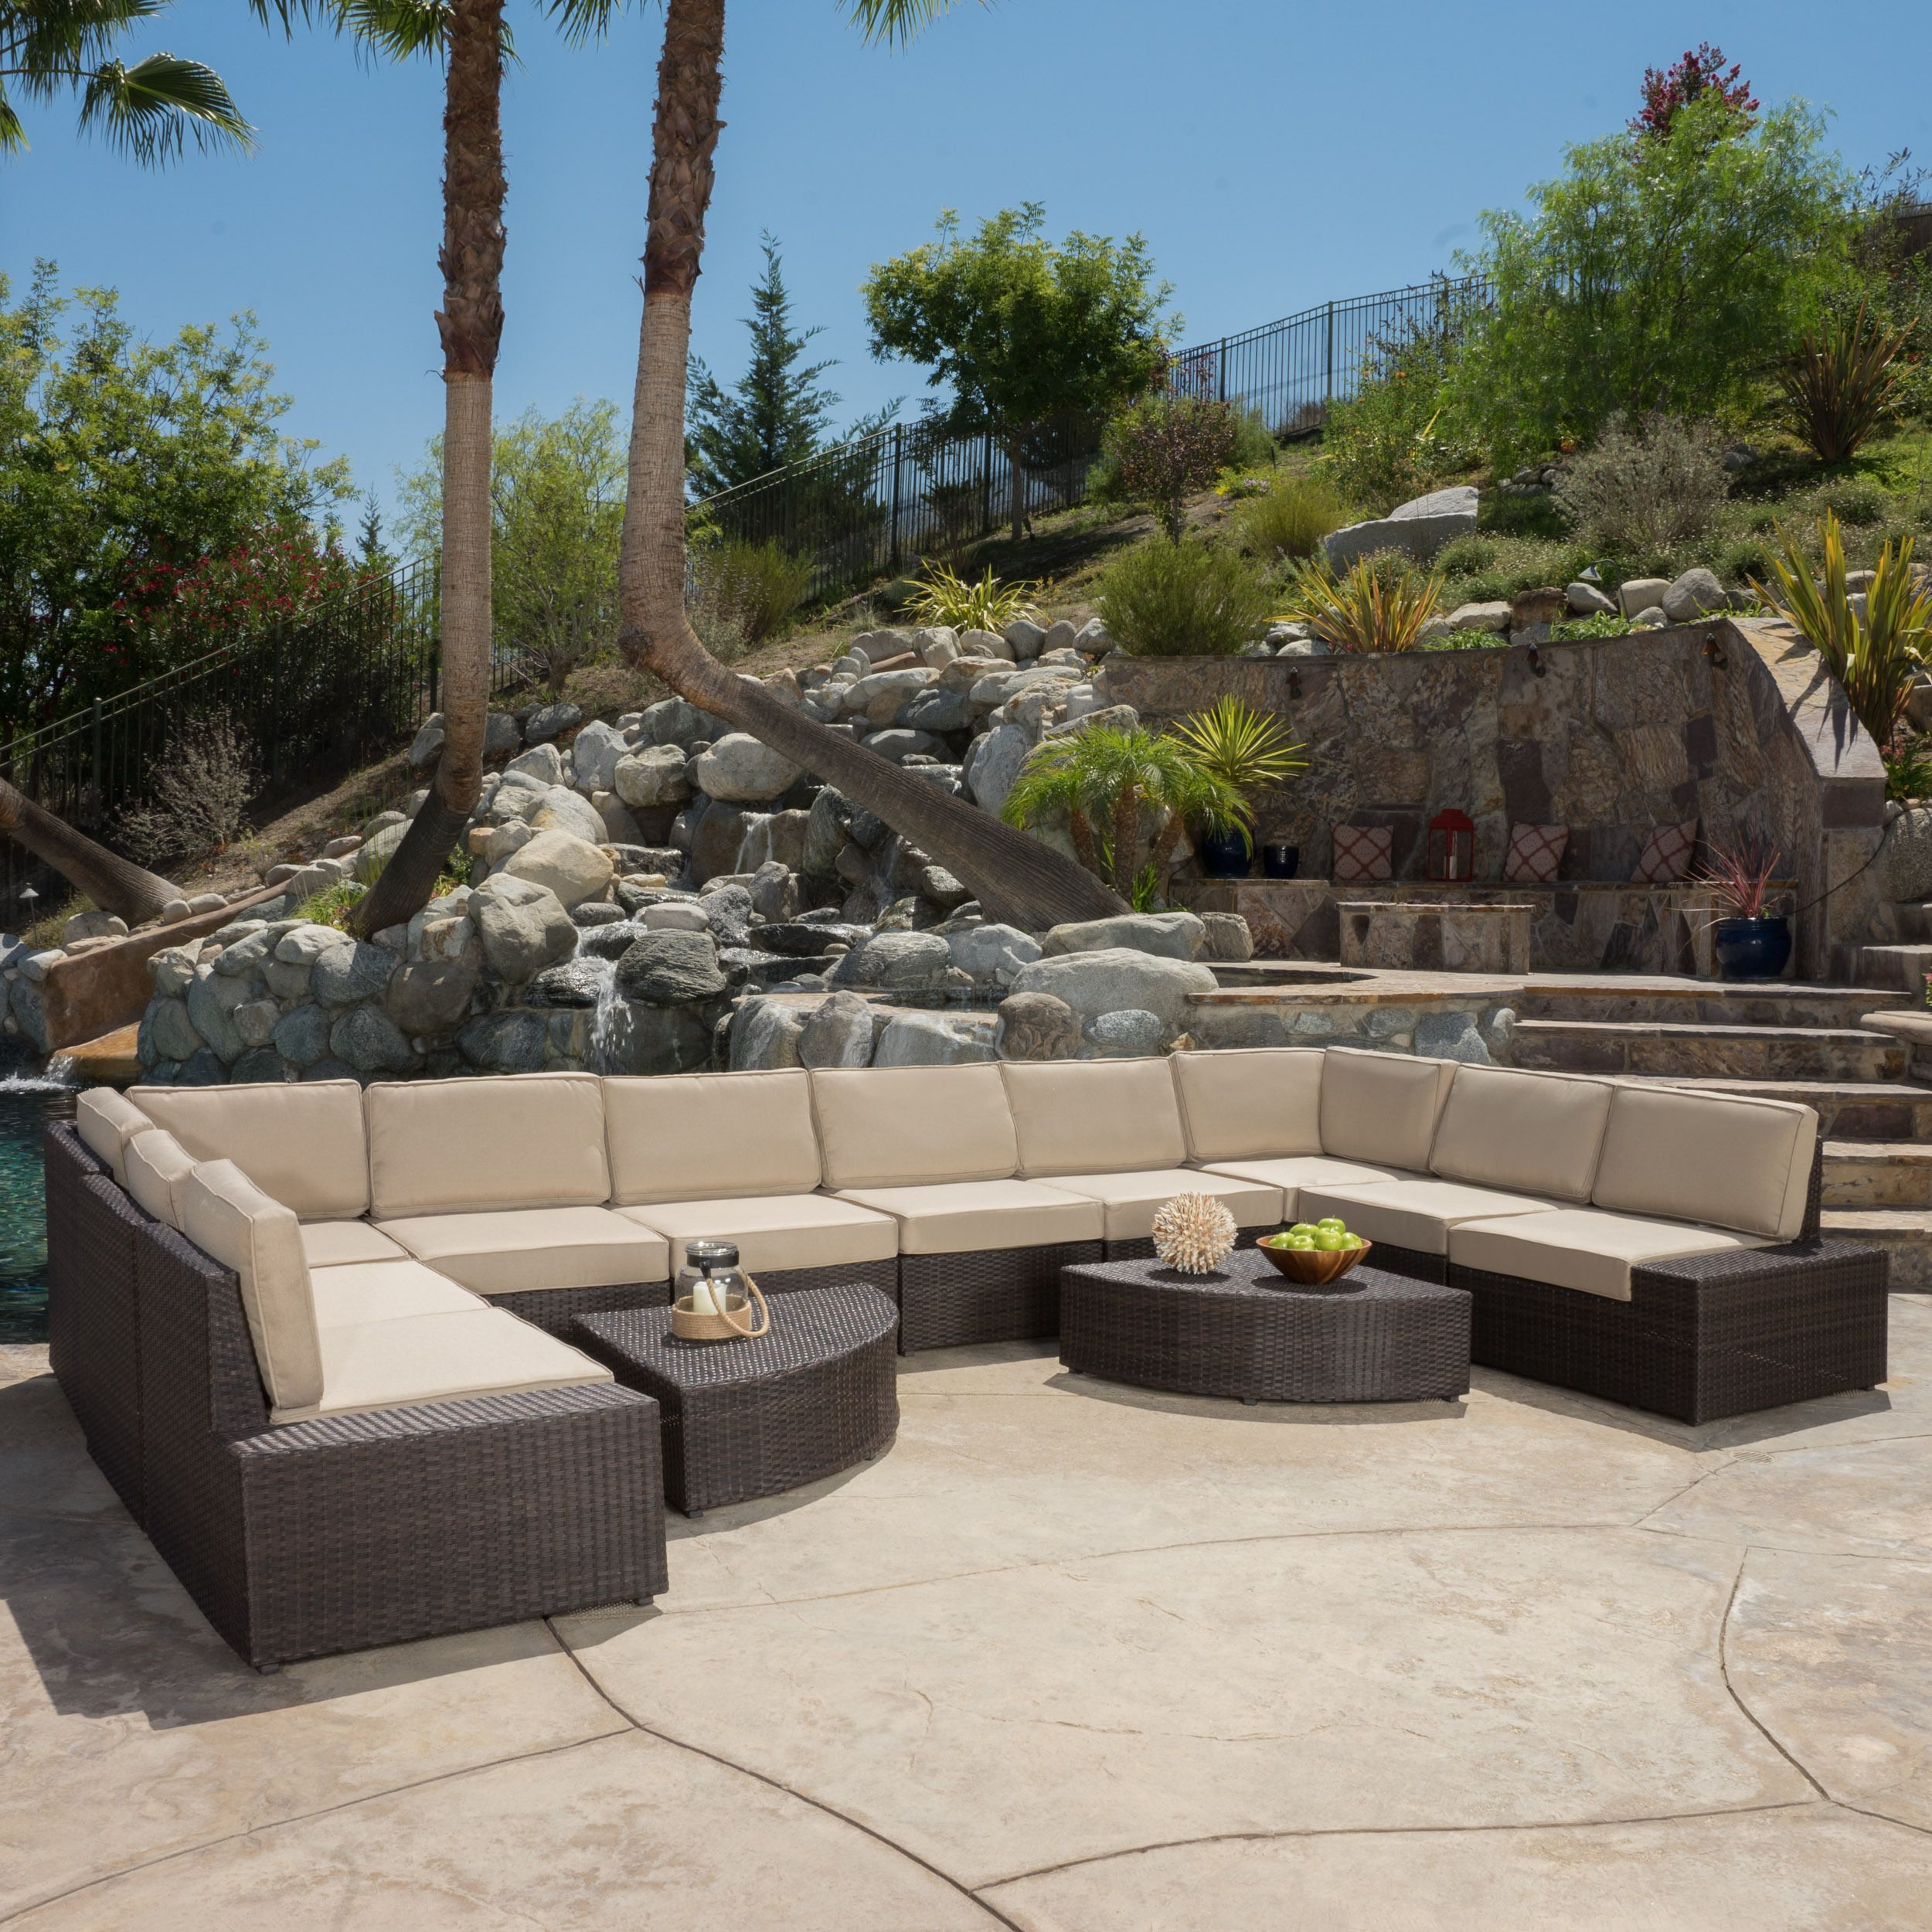 Christopher Knight Home Santa Cruz Outdoor Wicker Sectional Sofa Set With Cushions Patio Furniture